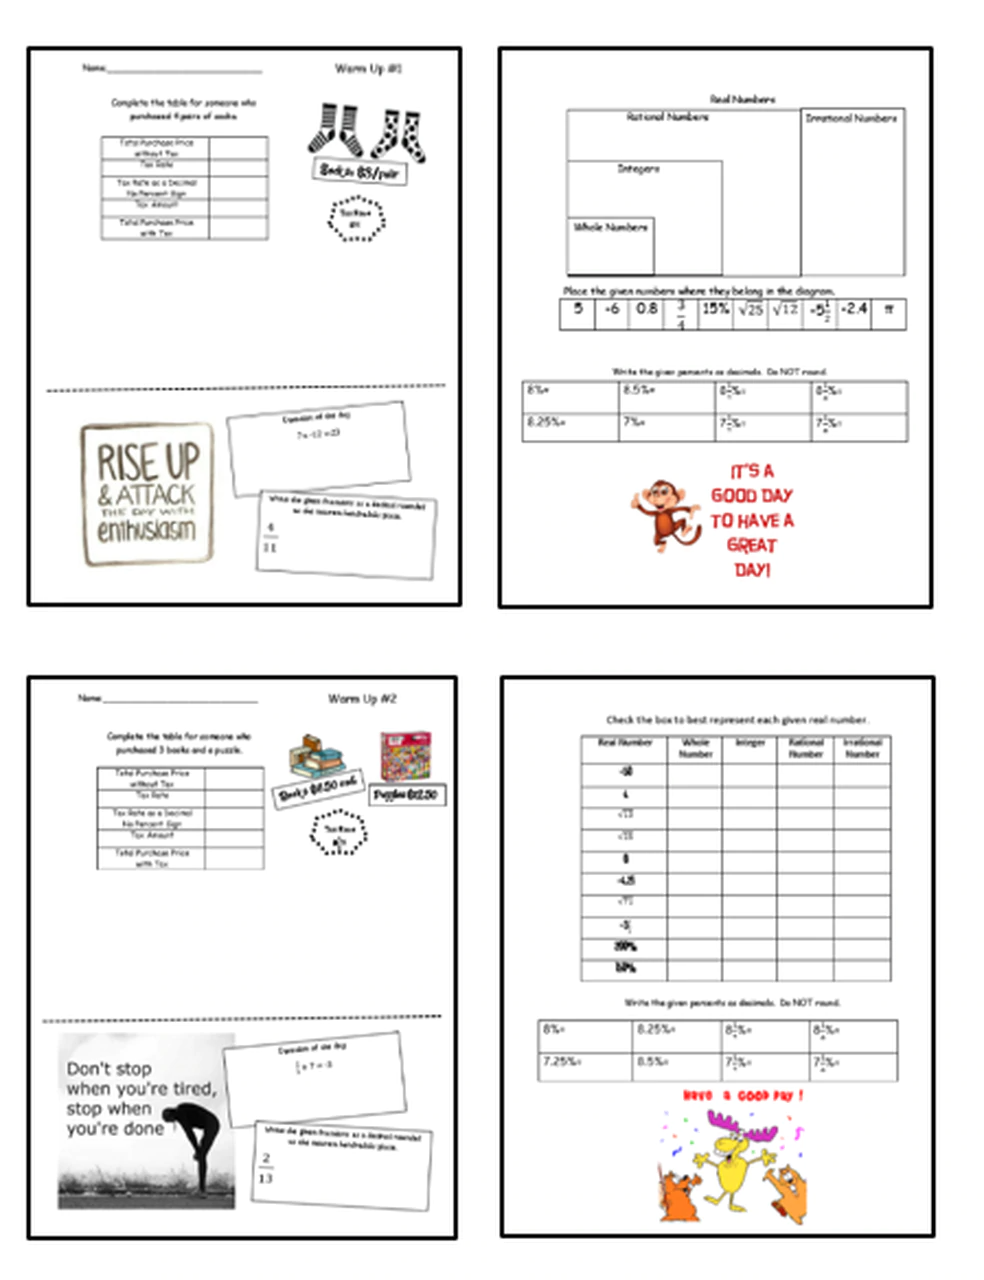 small resolution of 40 6th Grade Math Activities ideas in 2021   math activities